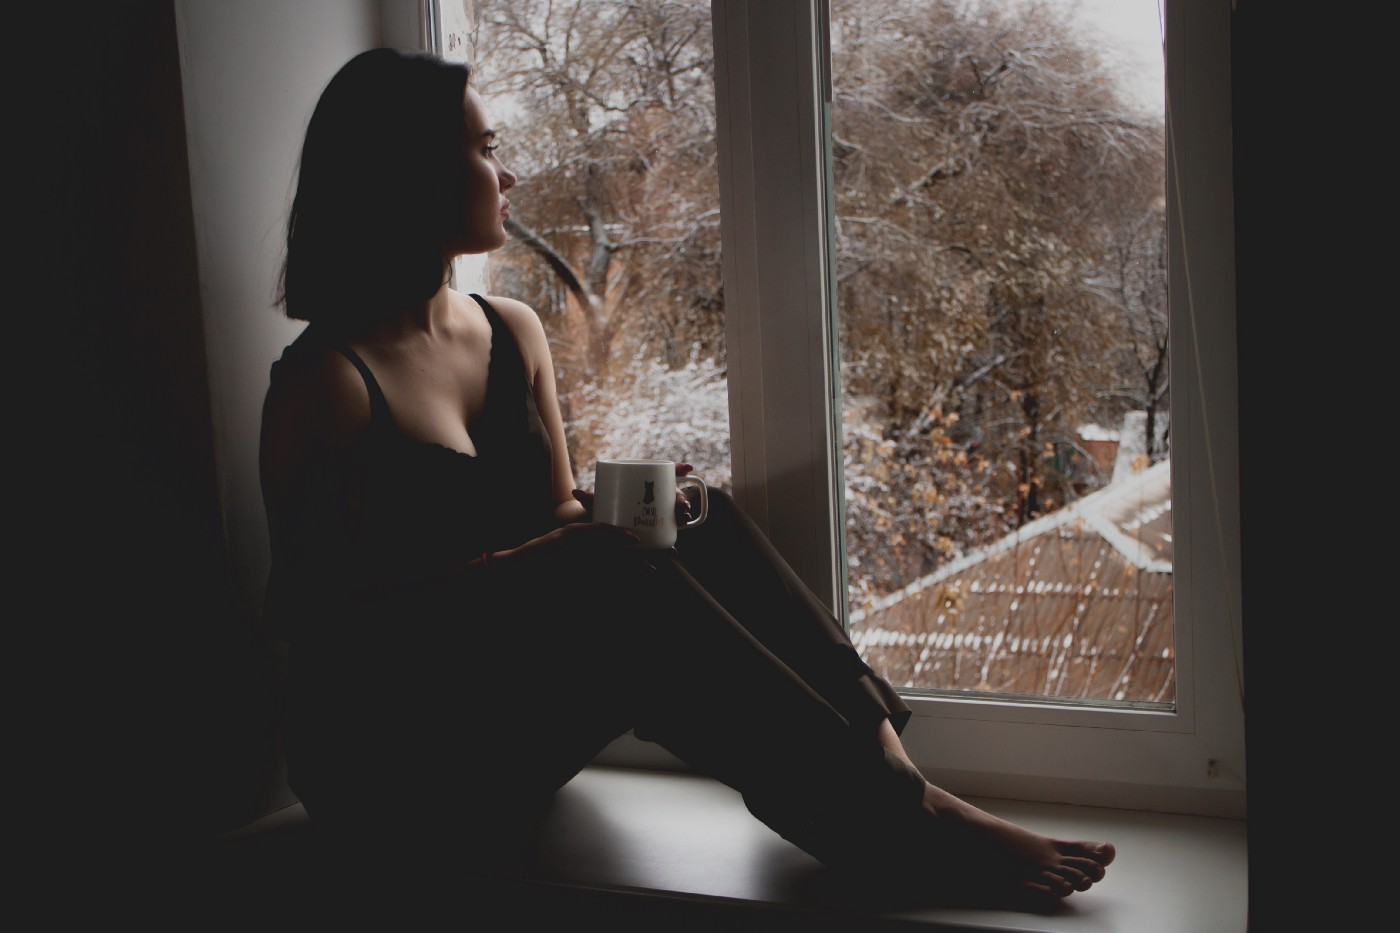 A woman sitting on a window sill looking out at snowy roof-tops and trees